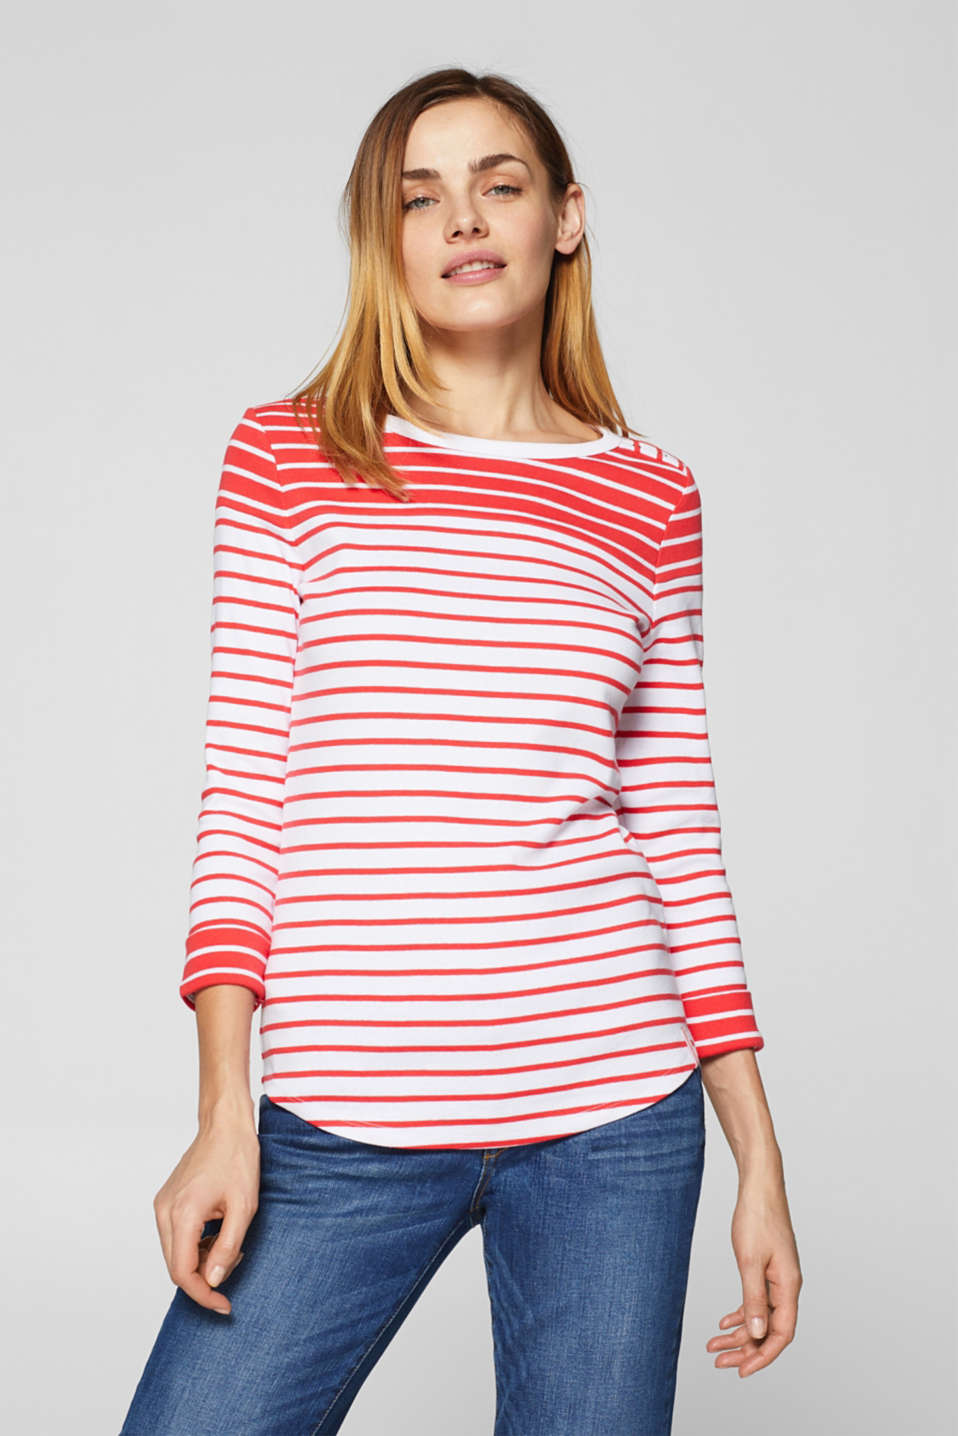 edc - Striped T-shirt with a button placket, 100% cotton